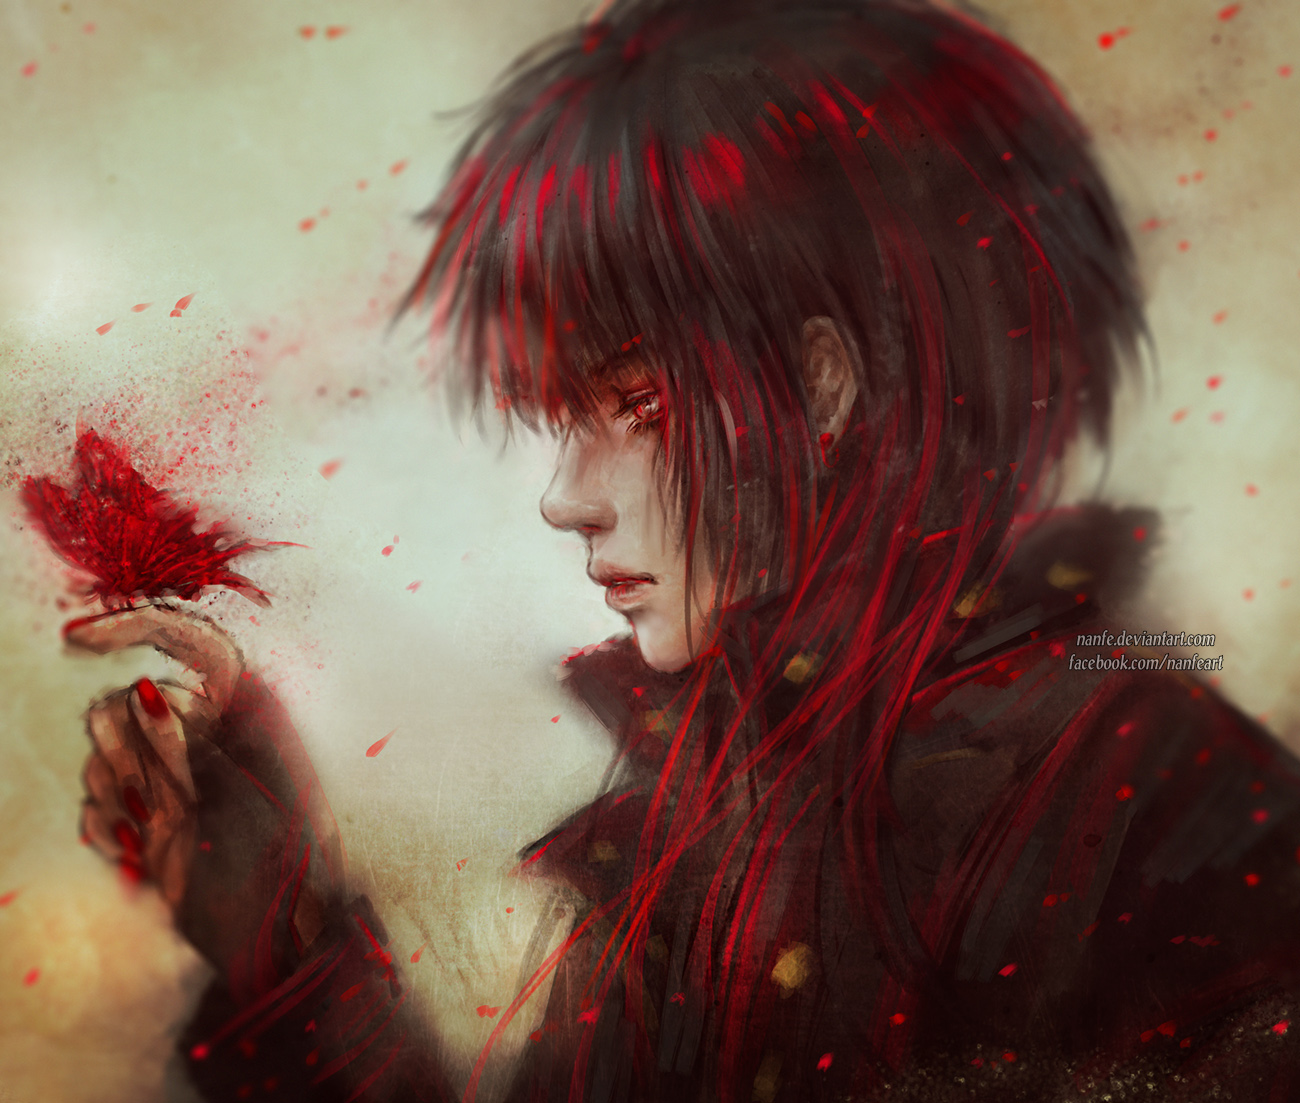 Red Reaper By Nanfe On Deviantart